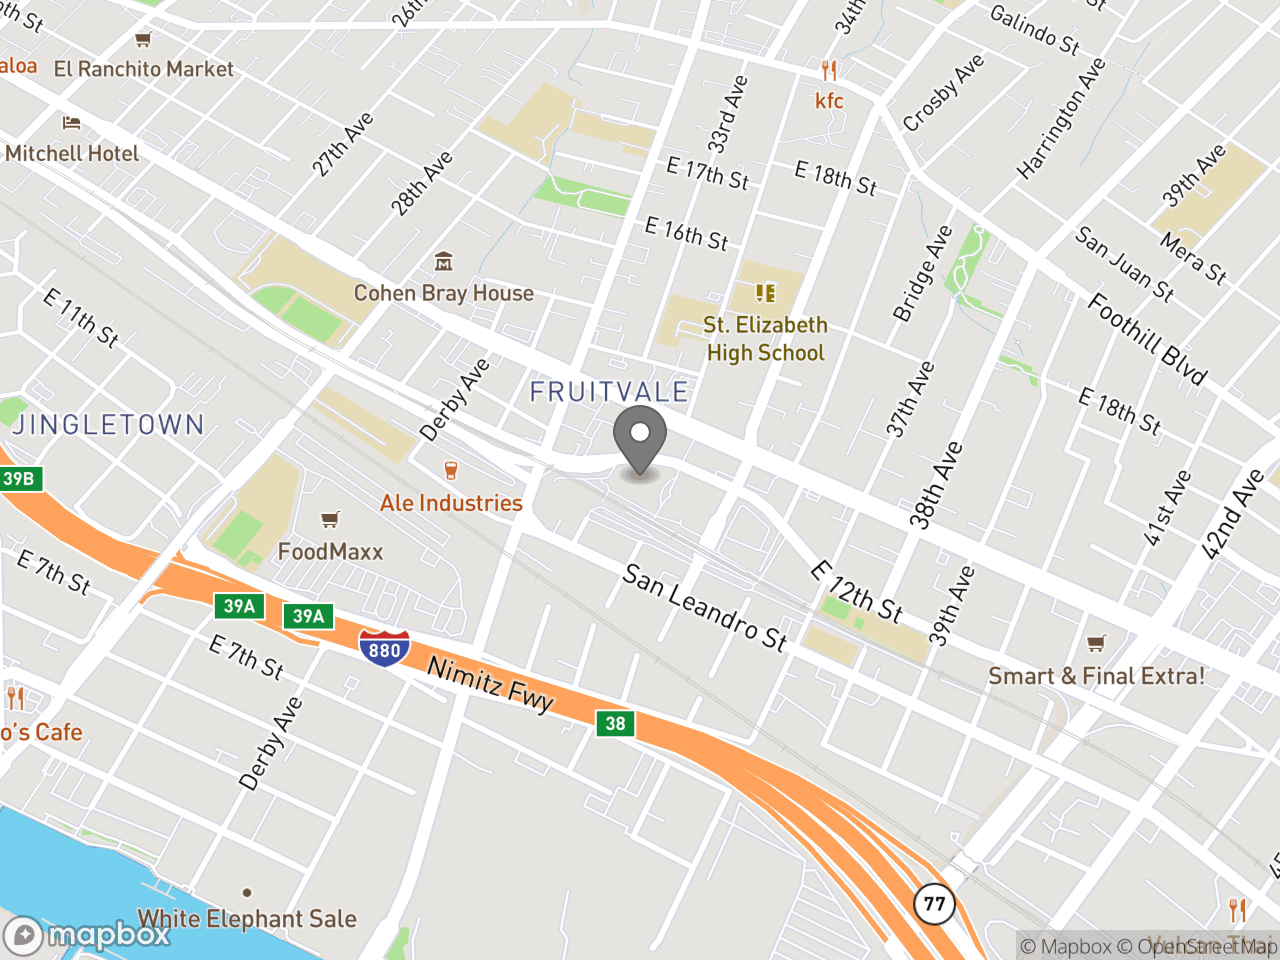 Map location for City of Oakland Community Budget Forum with Councilmember Noel Gallo, located at 3301 E 12th St in Oakland, CA 94601